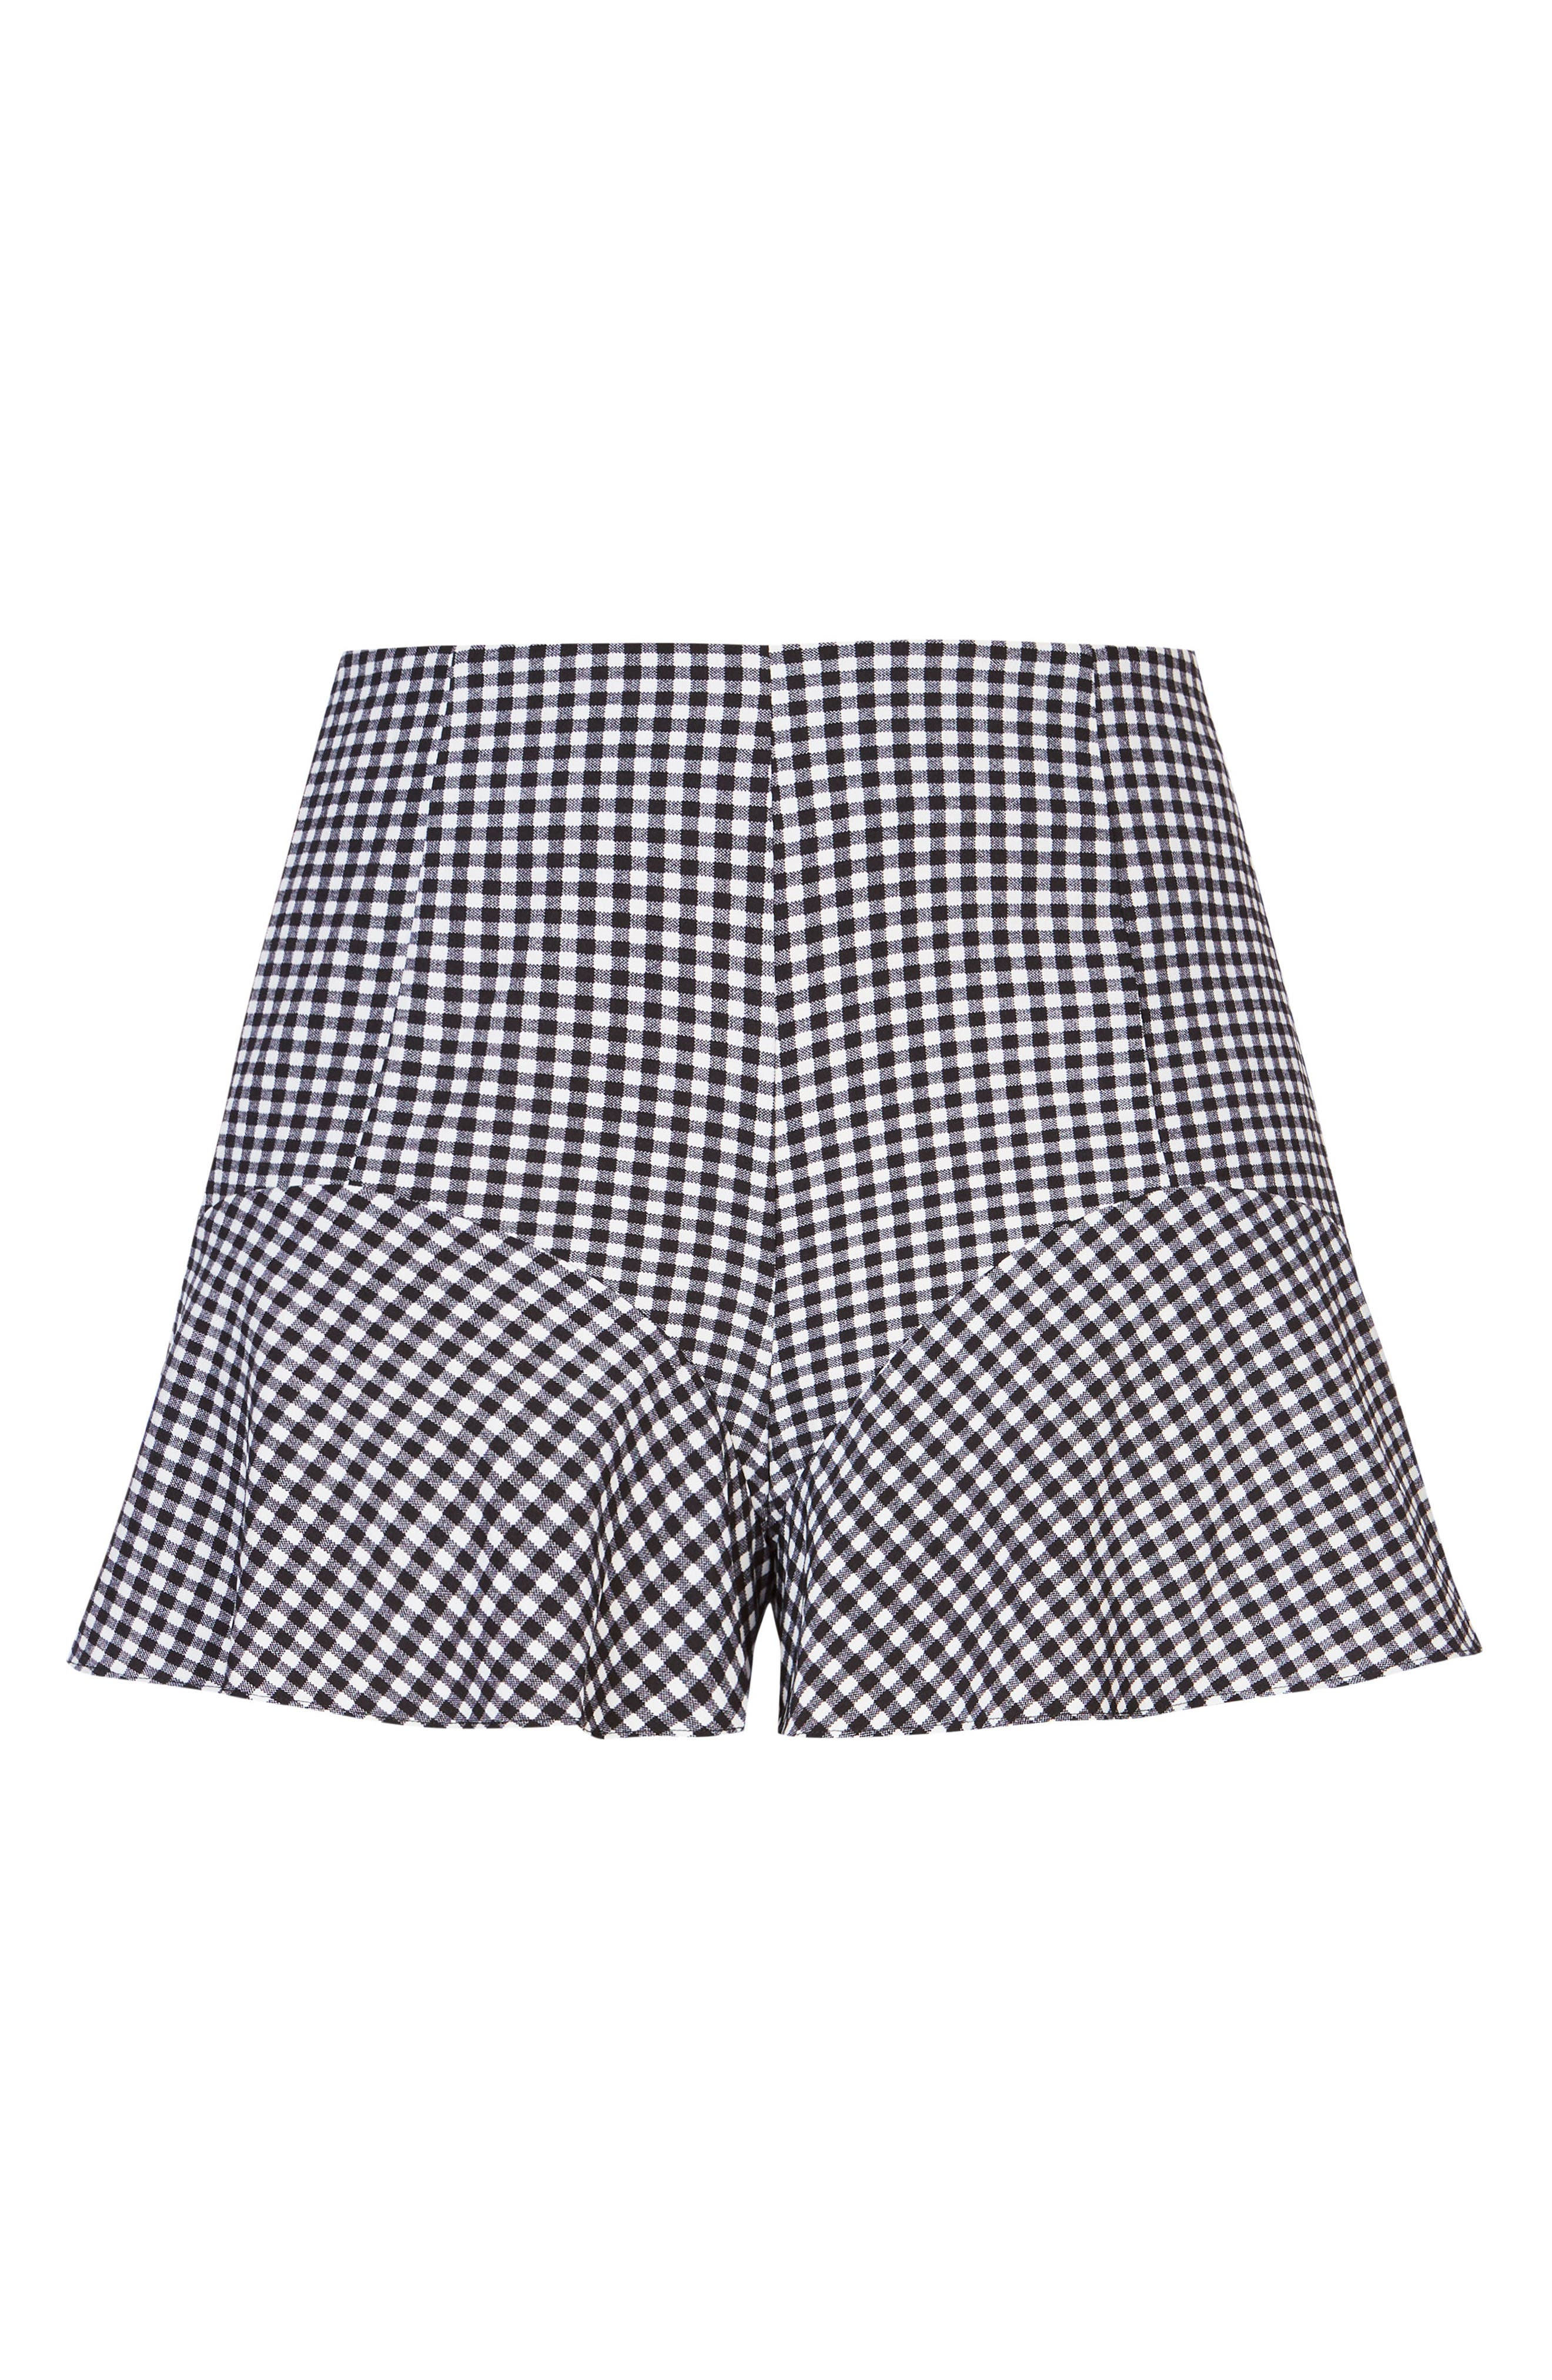 Cute Gingham Flutter Shorts,                             Alternate thumbnail 4, color,                             Black Check